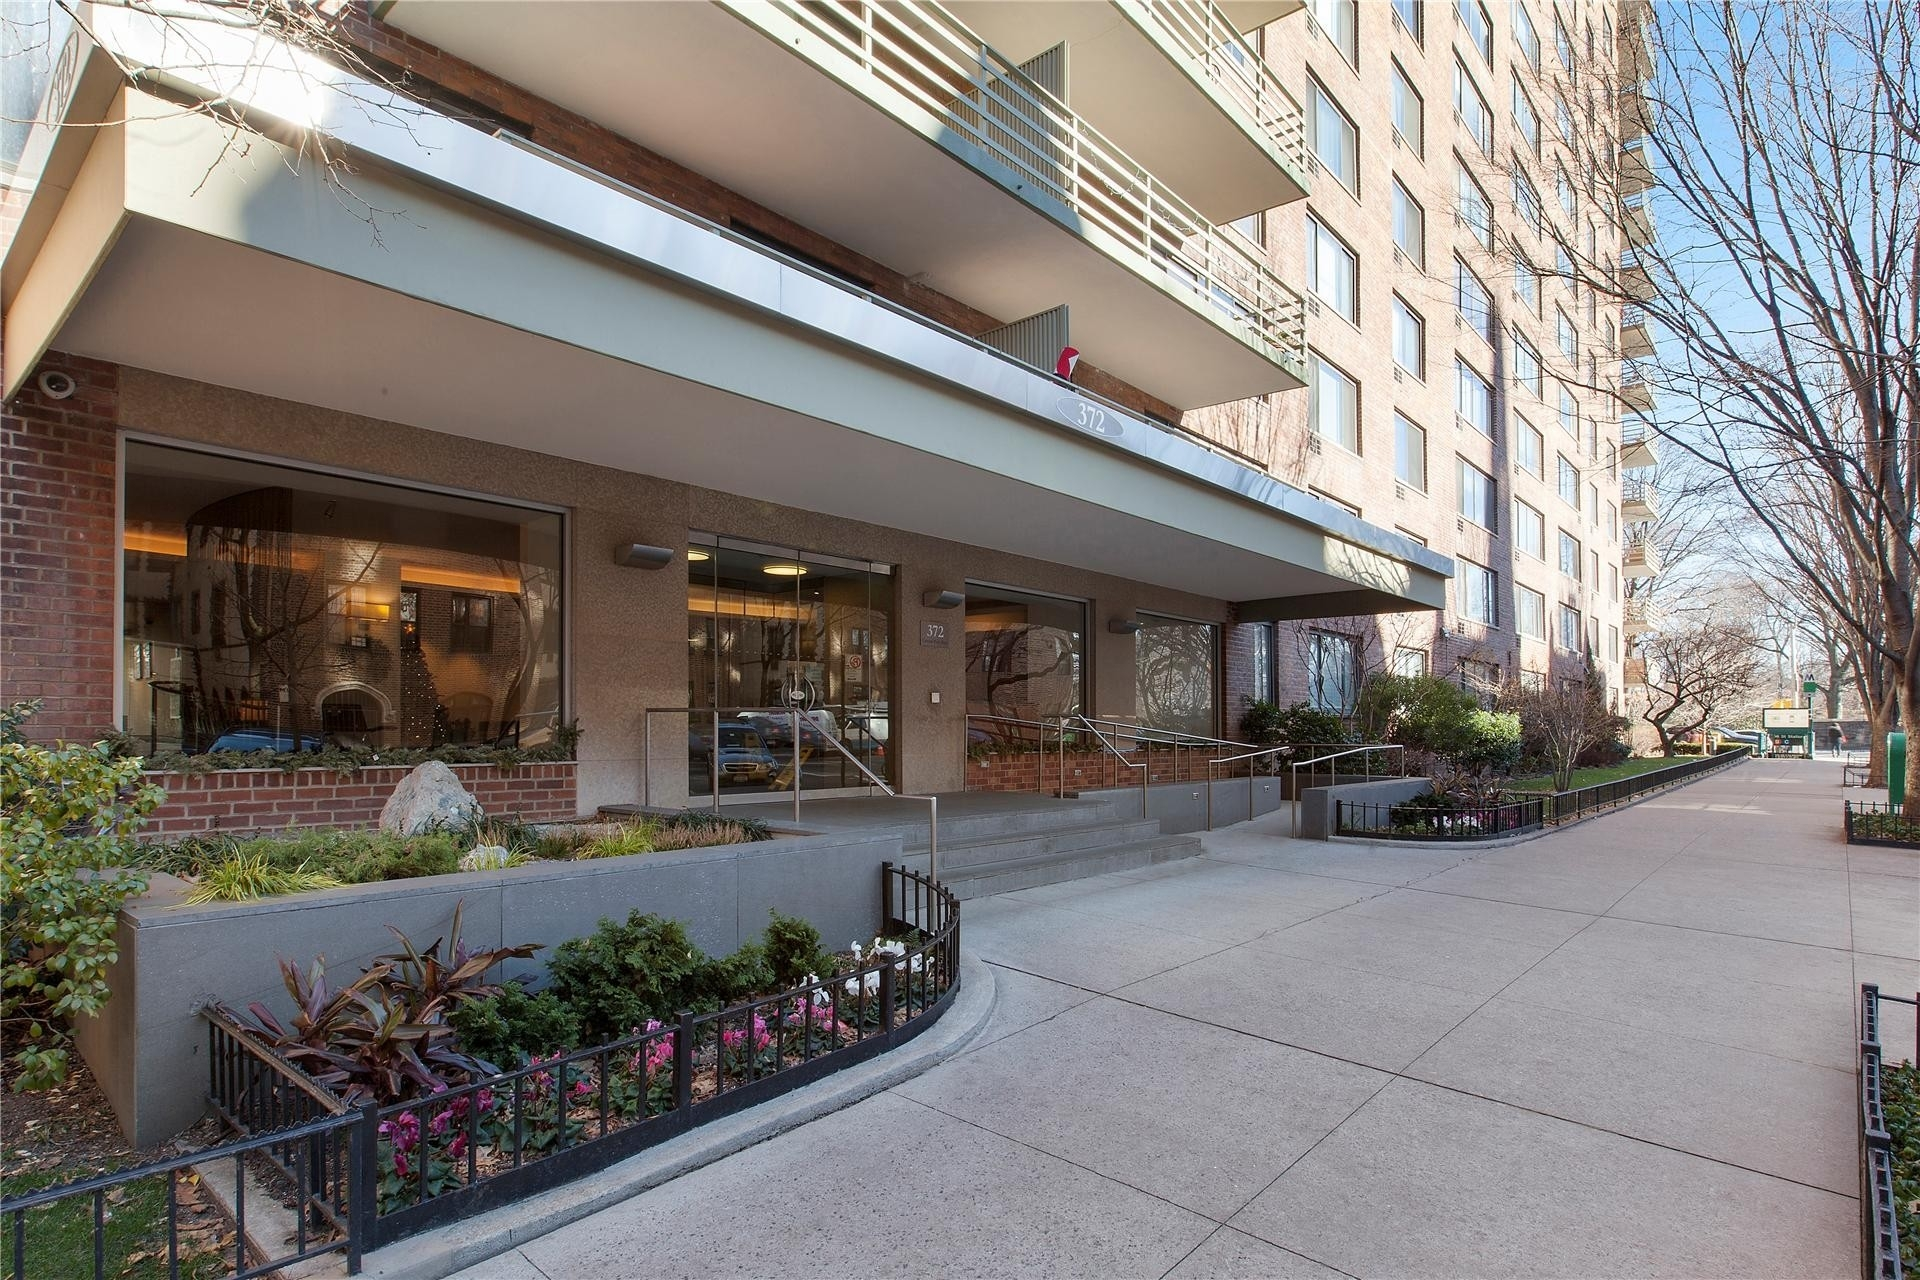 22. Condominiums for Sale at Vaux, The (Park Wes, 372 CENTRAL PARK W, 5BC Manhattan Valley, New York, NY 10025